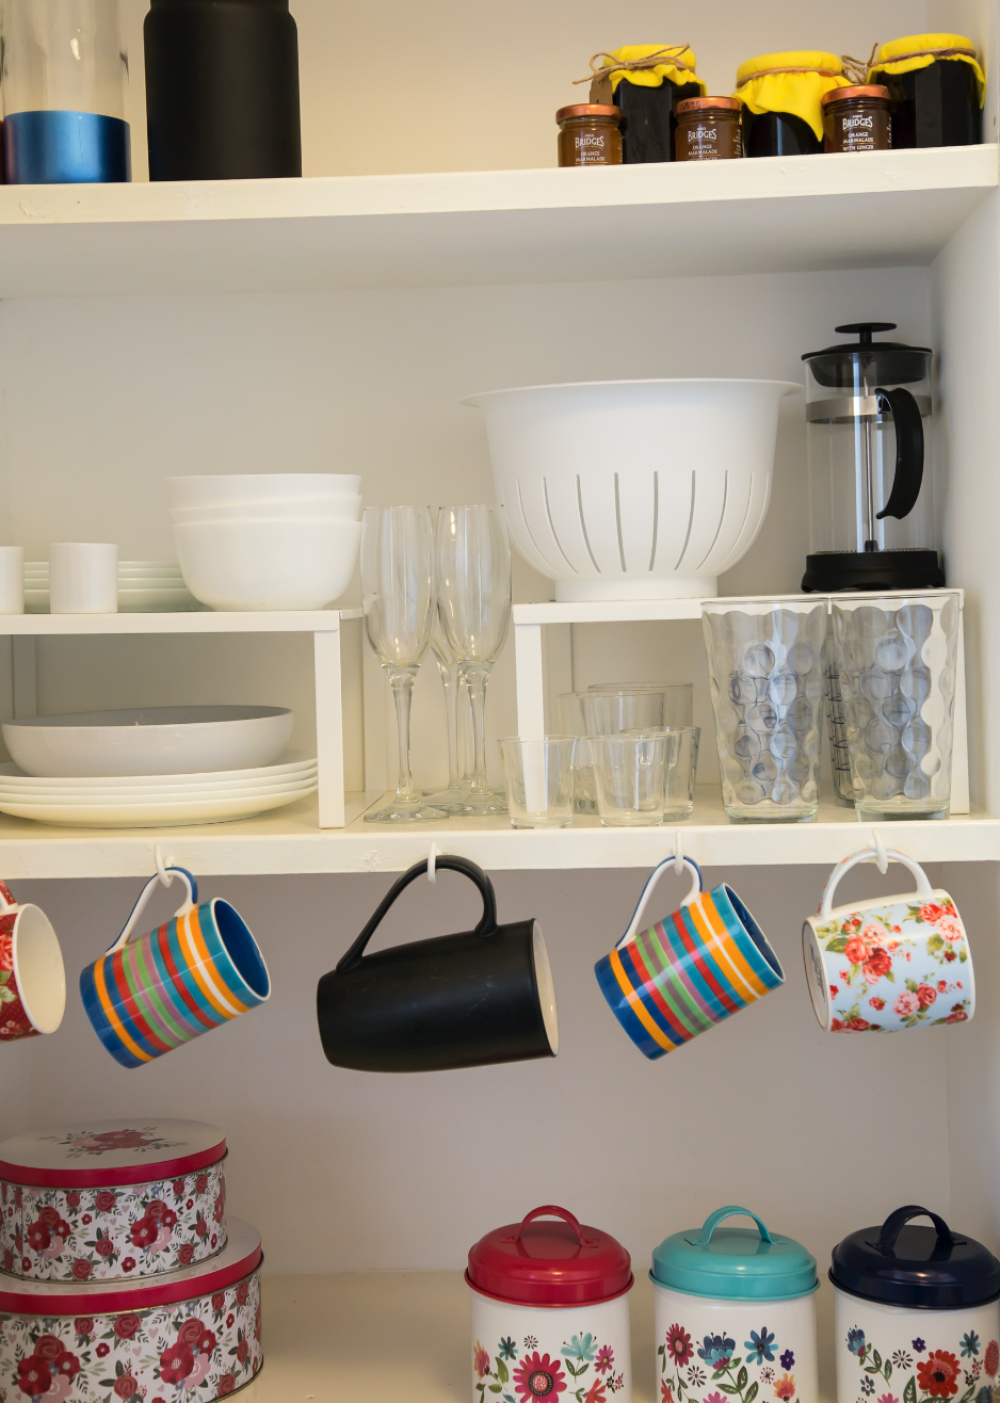 The kitchen is cute and quirky, with pots and pans, cloths and utensils, a two-plate hob, cooker, microwave, fridge-freezer and brand new washer-dryer.